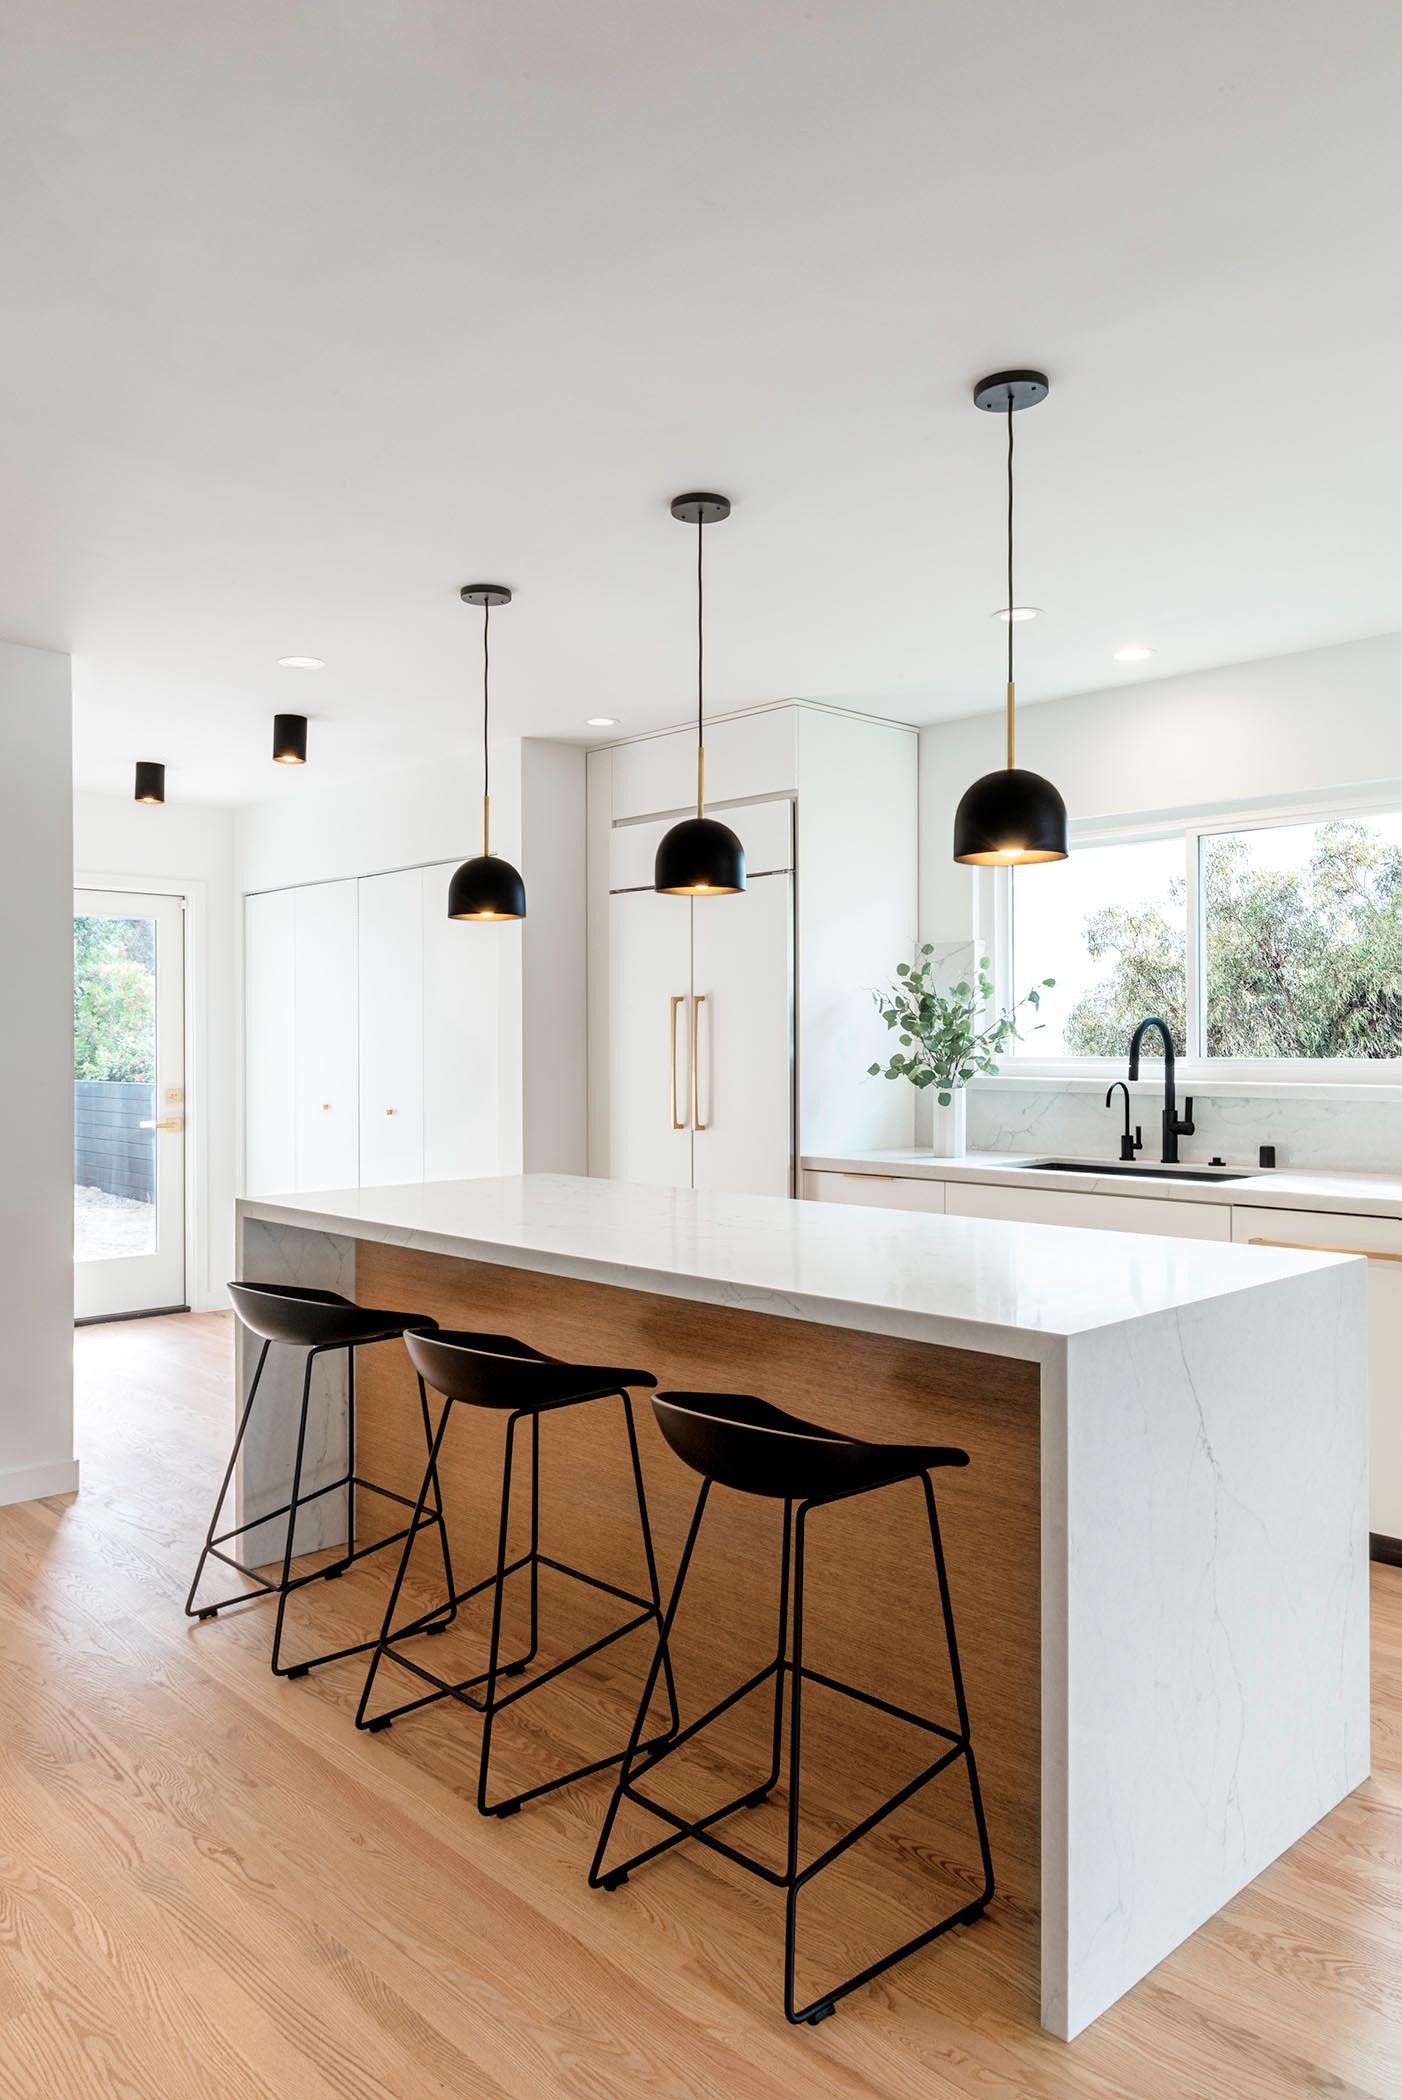 Three black pendant lights by Cedar & Moss hang above a modern kitchen island which complement the black stools. The design of the island allows the stools to be neatly tucked away when not being used.